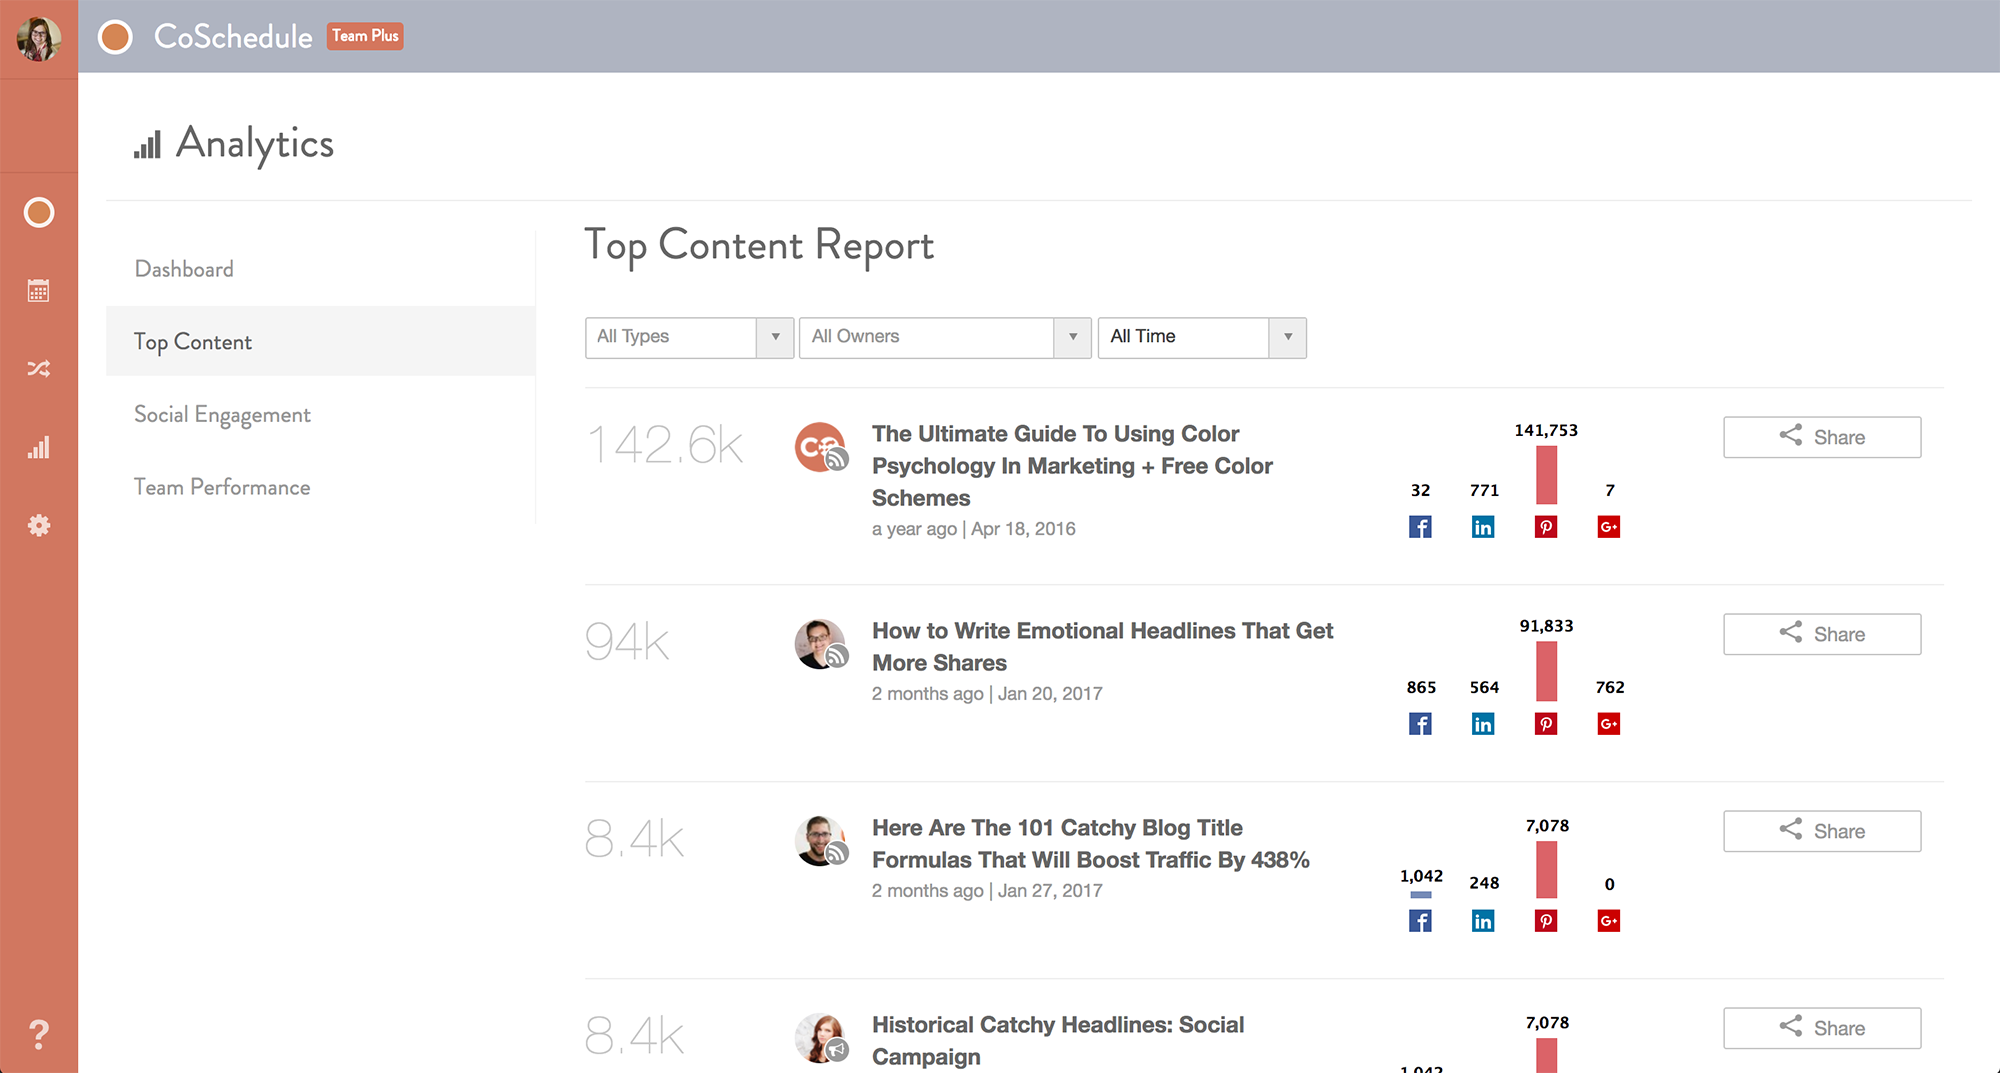 top content report on coschedule // his hlevel over over of results // set // Social media content calendar // Social media strategy // social media marketing calendar // automate postings on a schedule // posting with coschedule